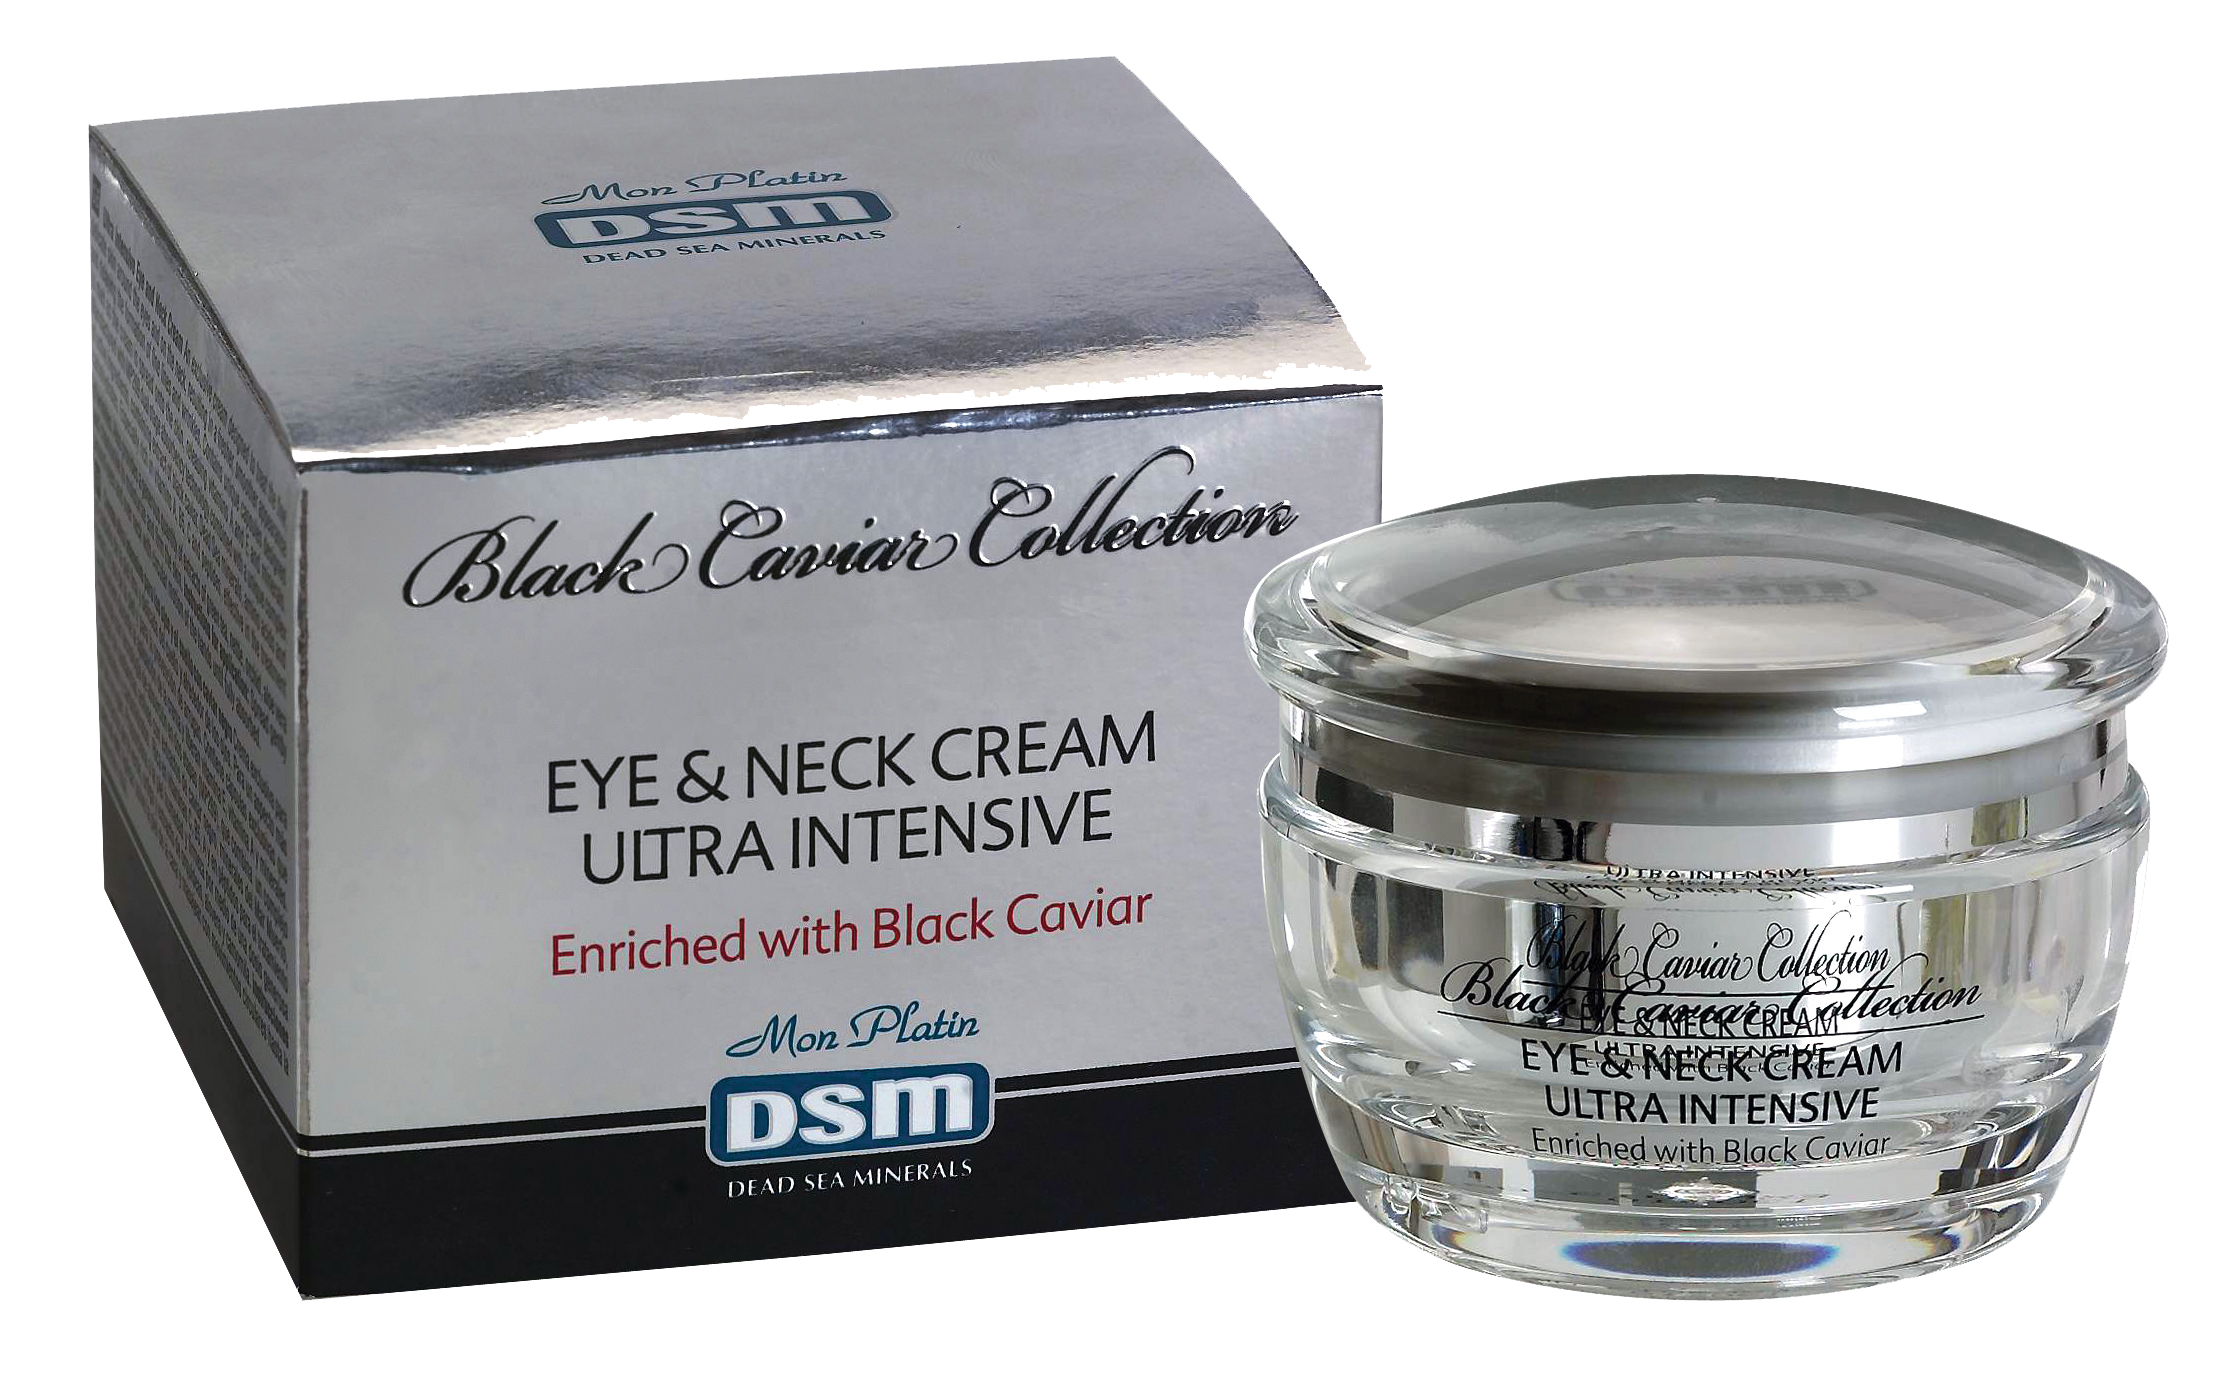 bc Eye & Neck Cream Enriched with Black Caviar